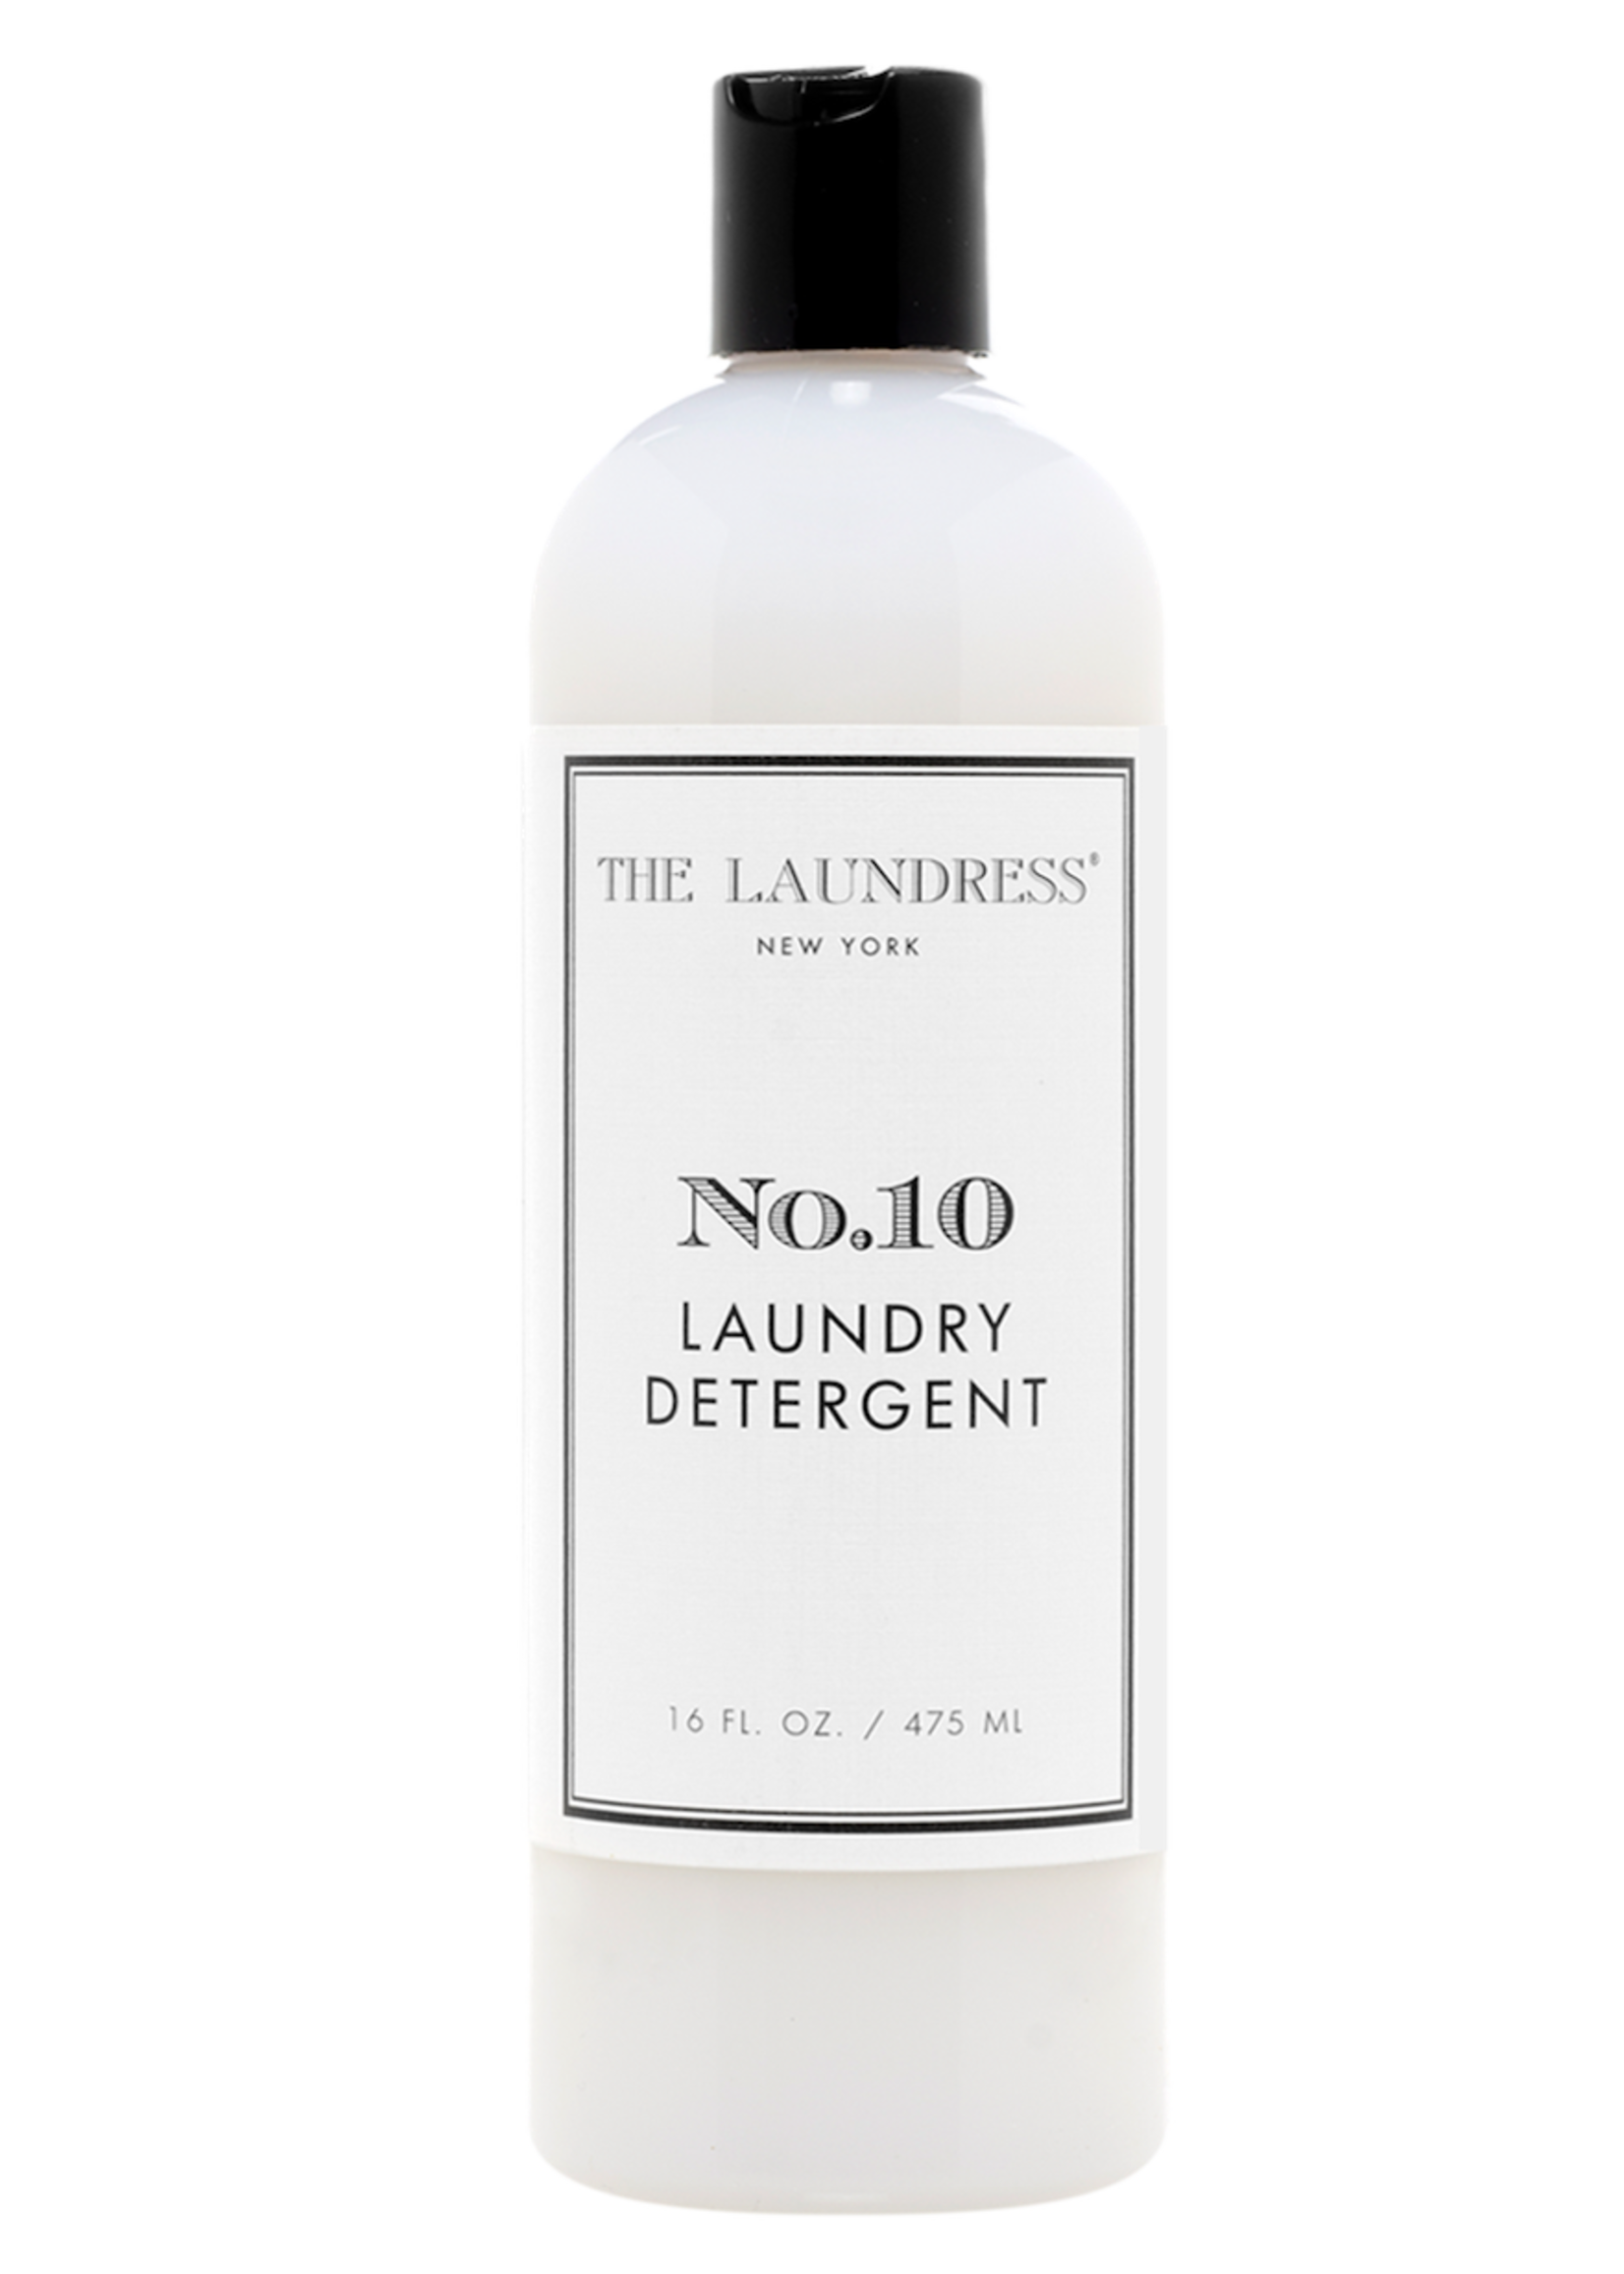 The Laundress New York No. 10 Laundry Detergent